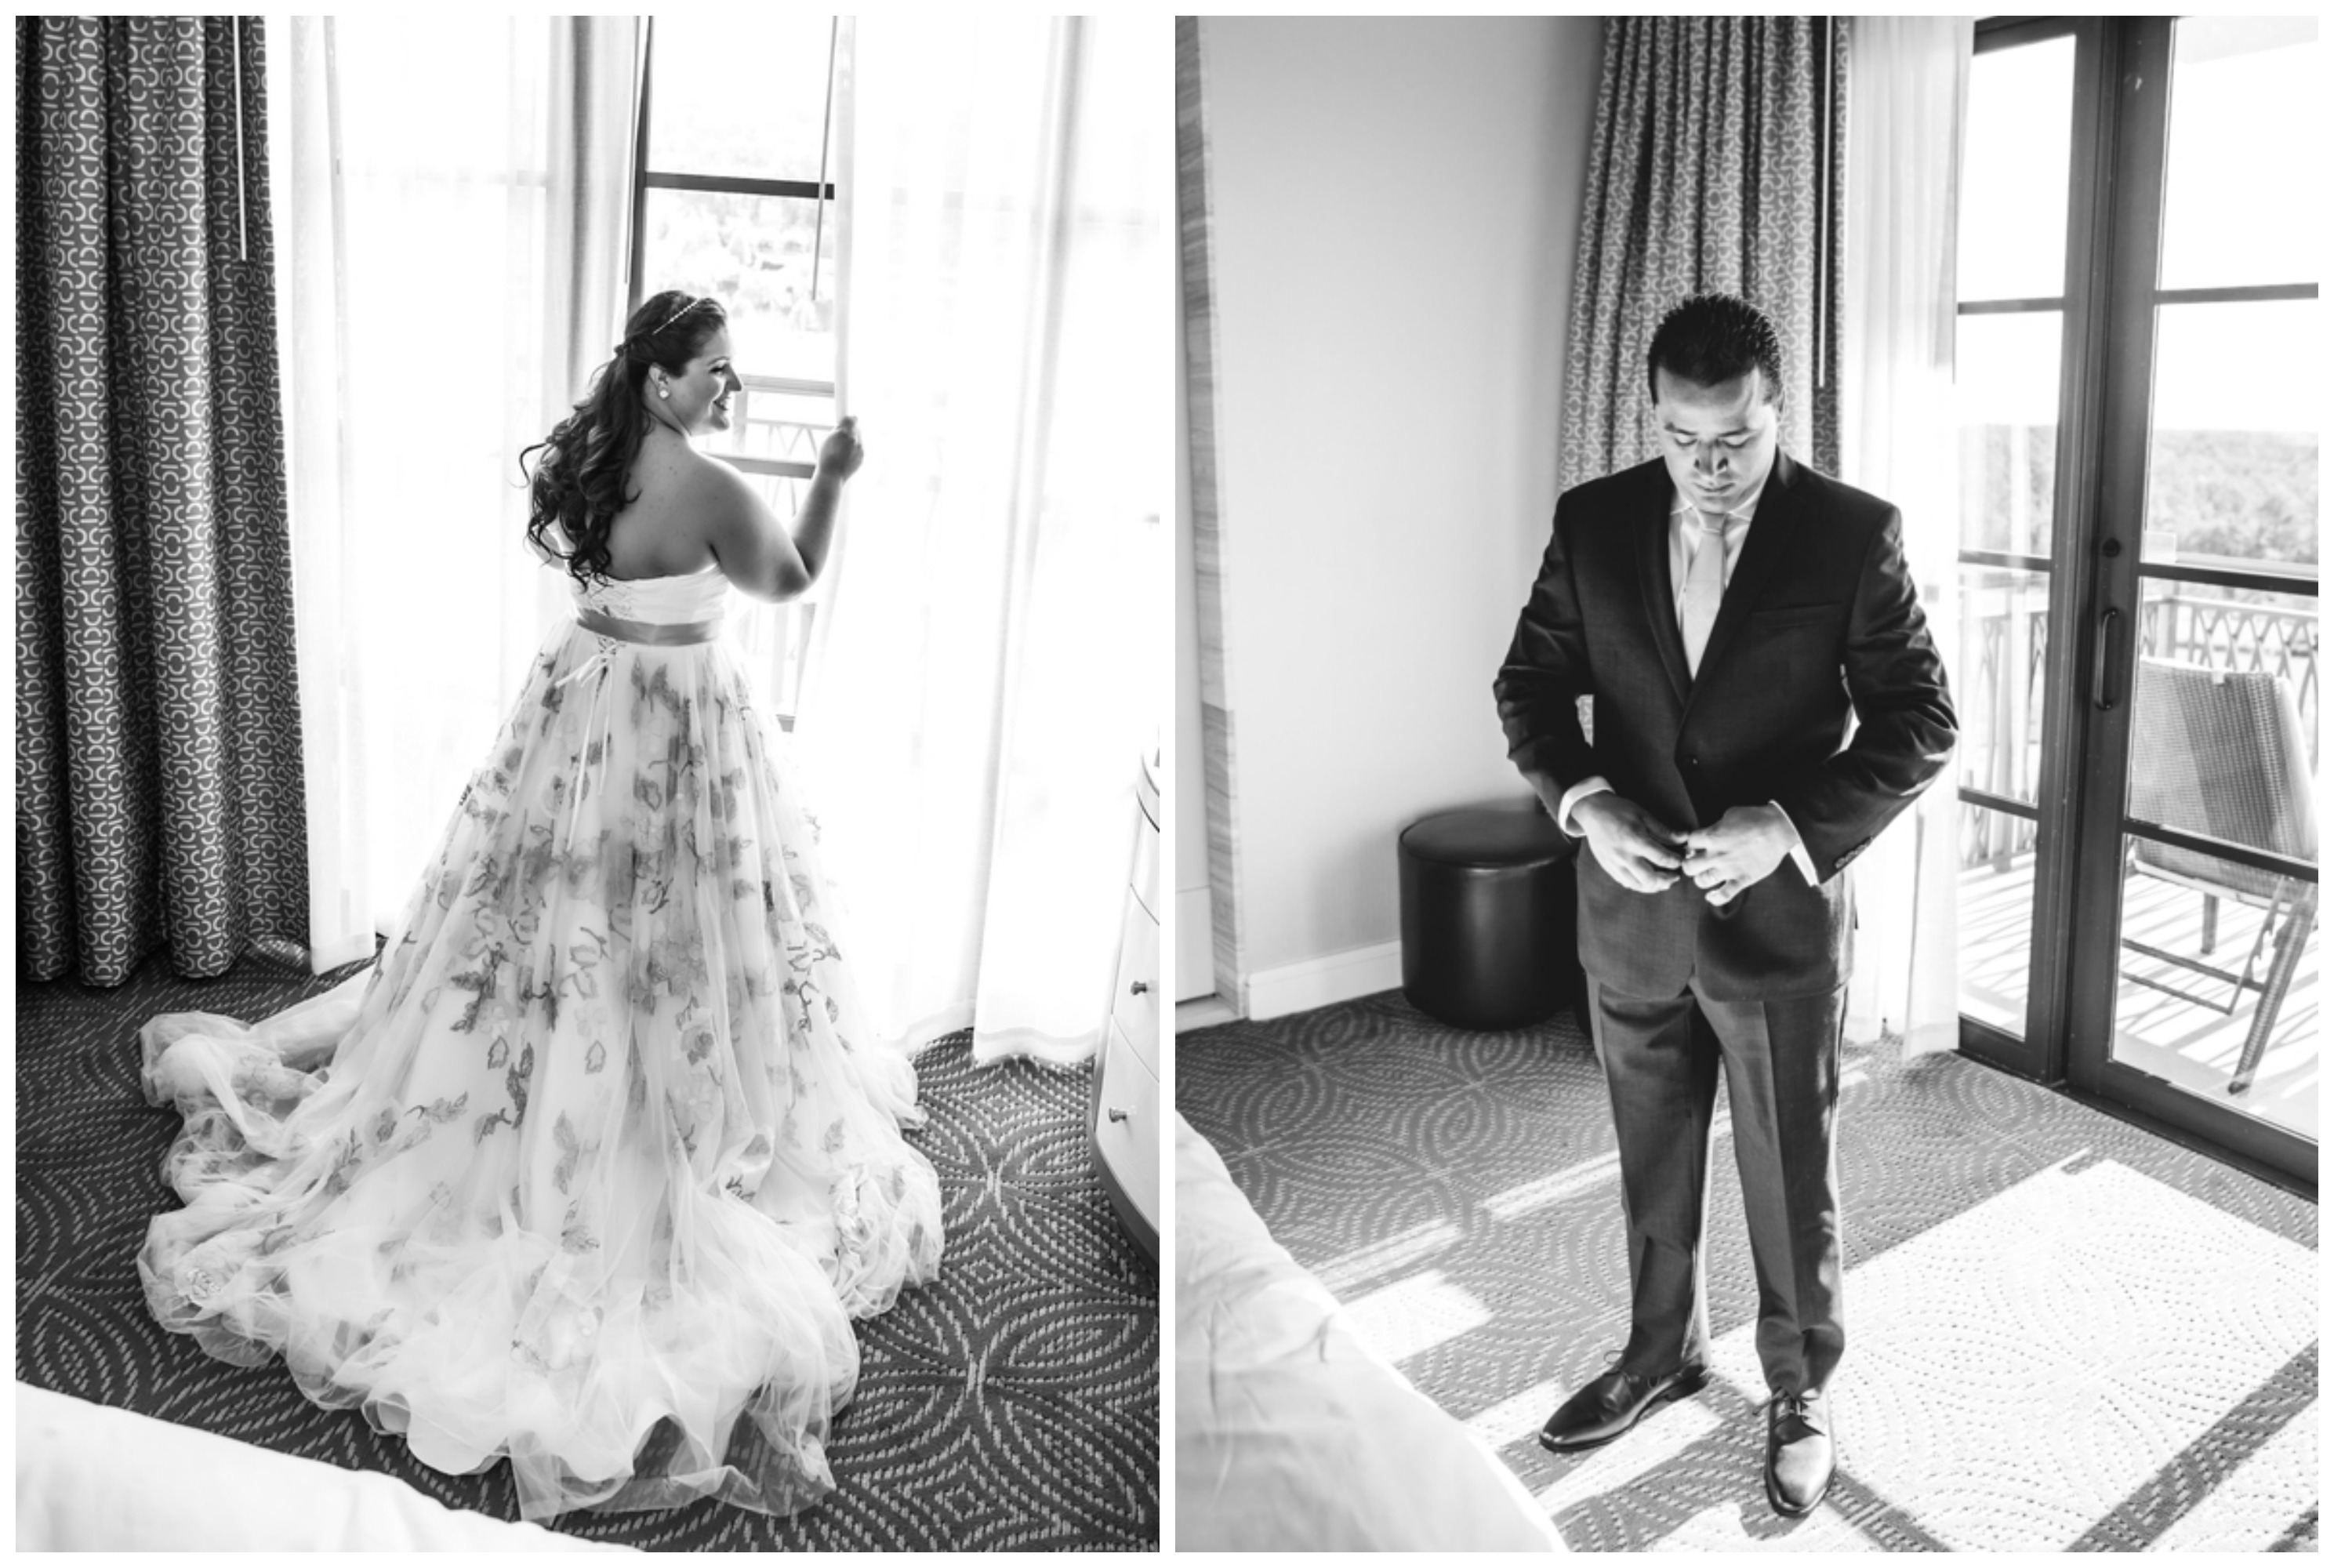 A Fairytale Florida Vow Renewal at The Four Seasons | The ...